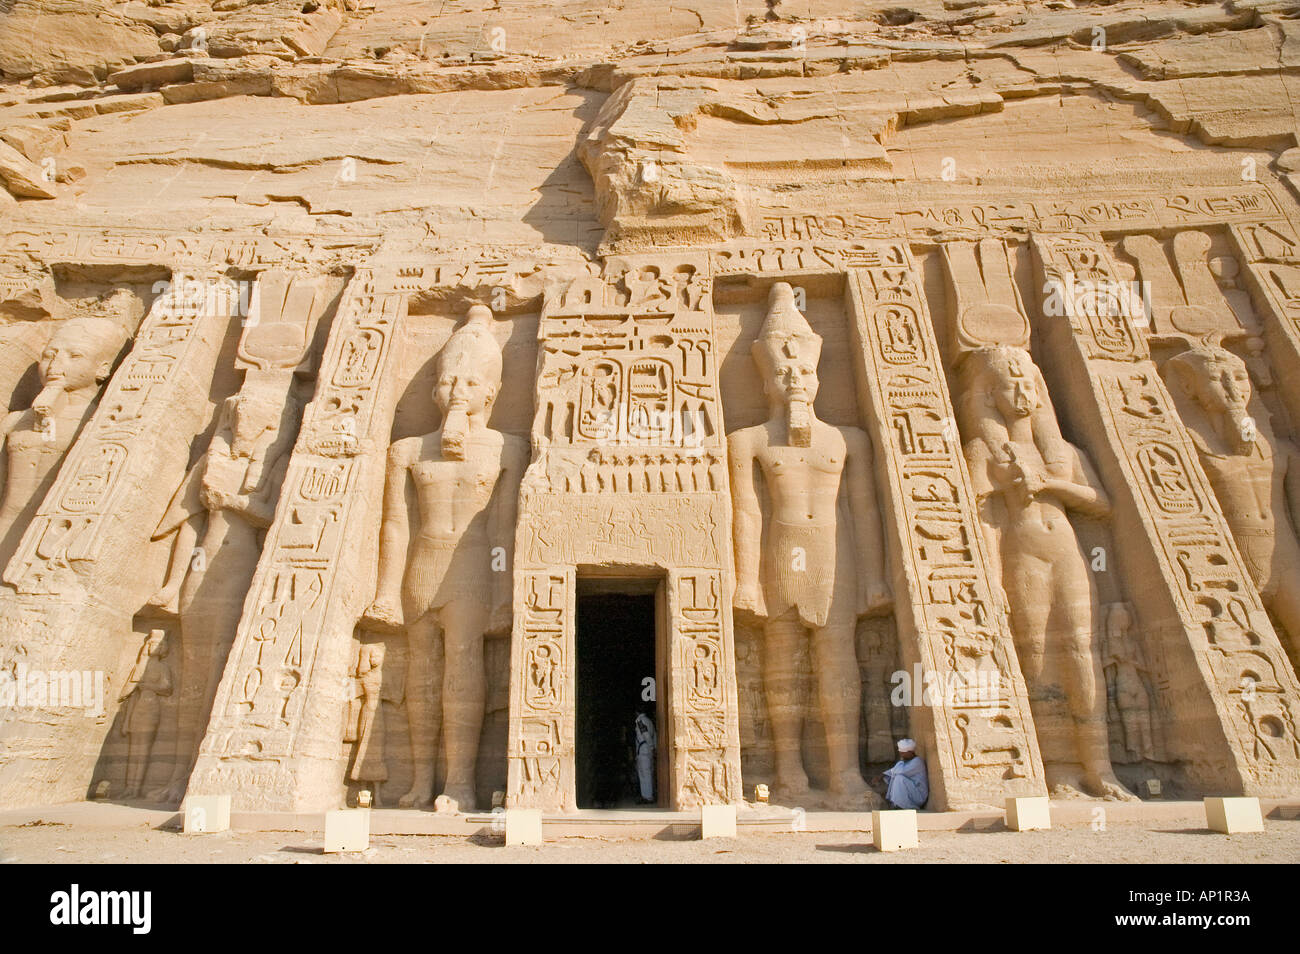 Temple of Hathor of Abu Simbel Upper Egypt Middle East DSC_4262 - Stock Image